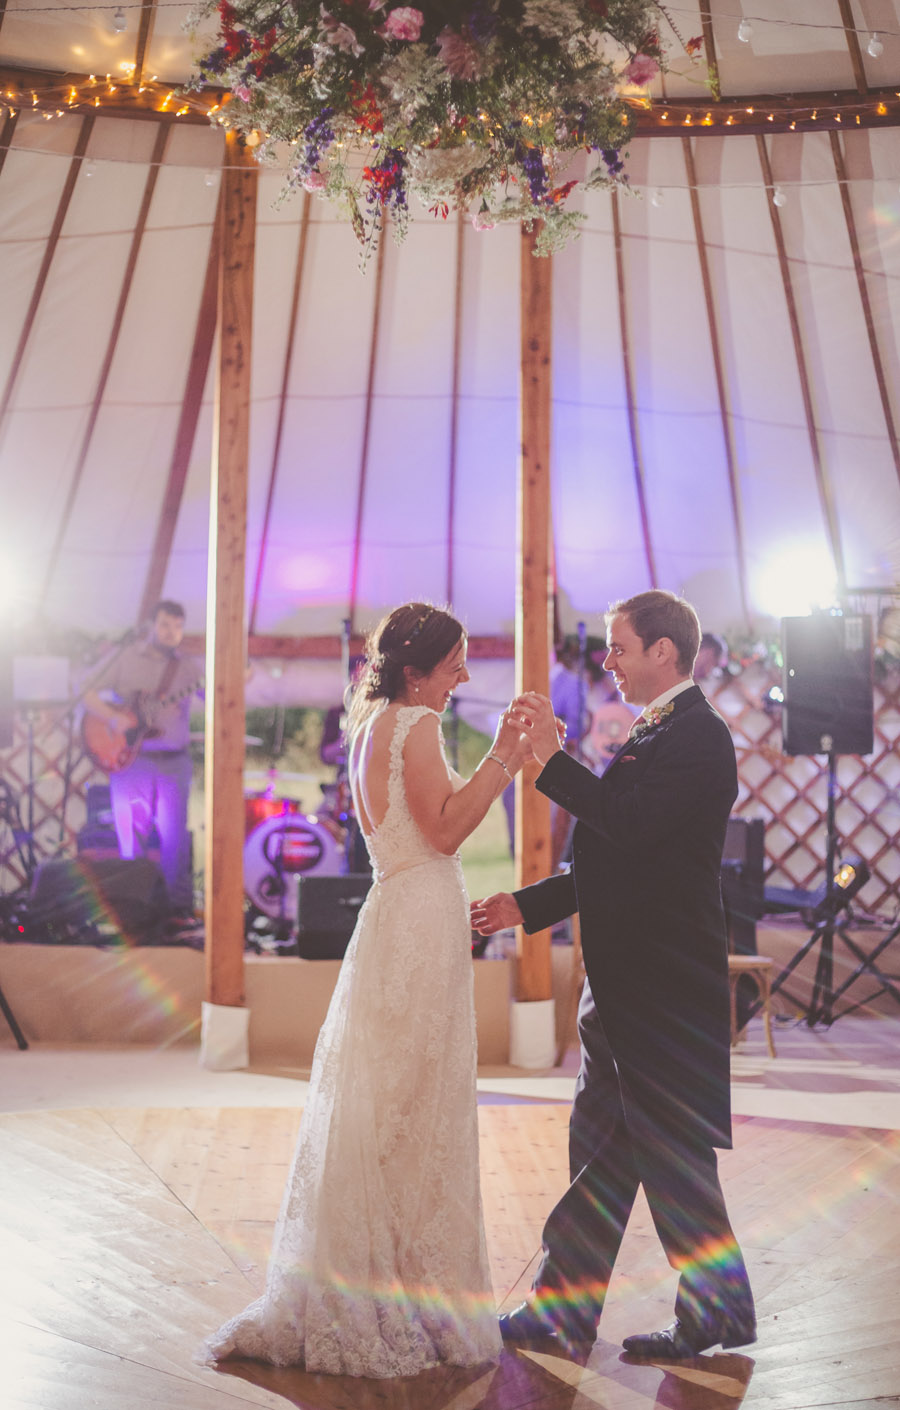 Liz & Andrew's Shropshire yurt wedding, photo credit Cara Green, The Little Paper Shop (36)